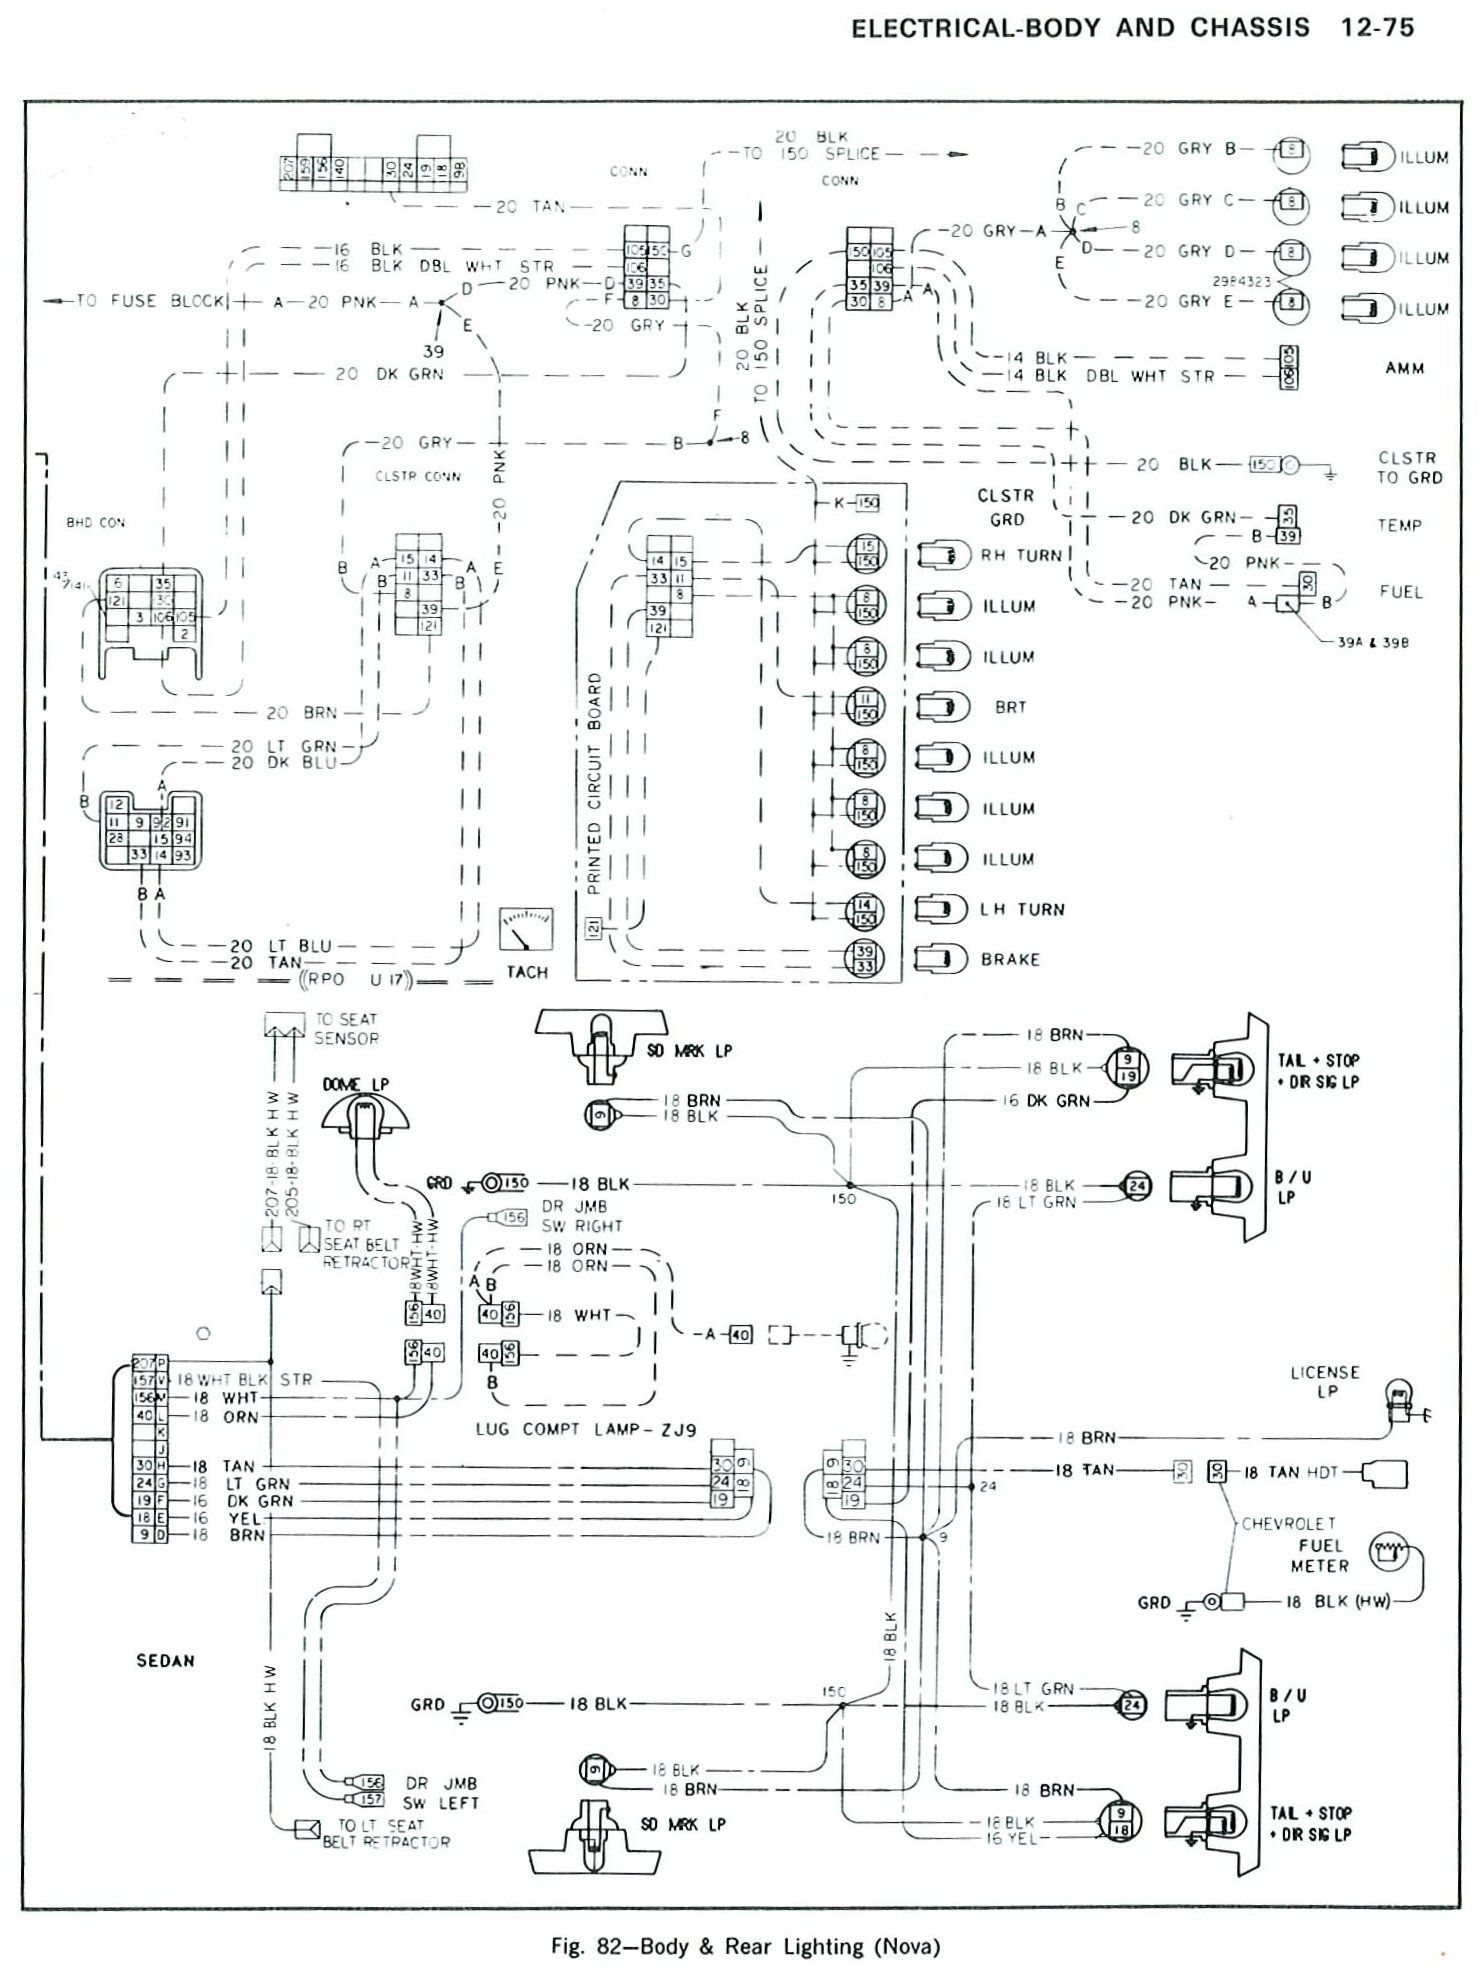 medium resolution of 85 chevy truck wiring diagram looking at the wiring diagram on the electrical forum click here